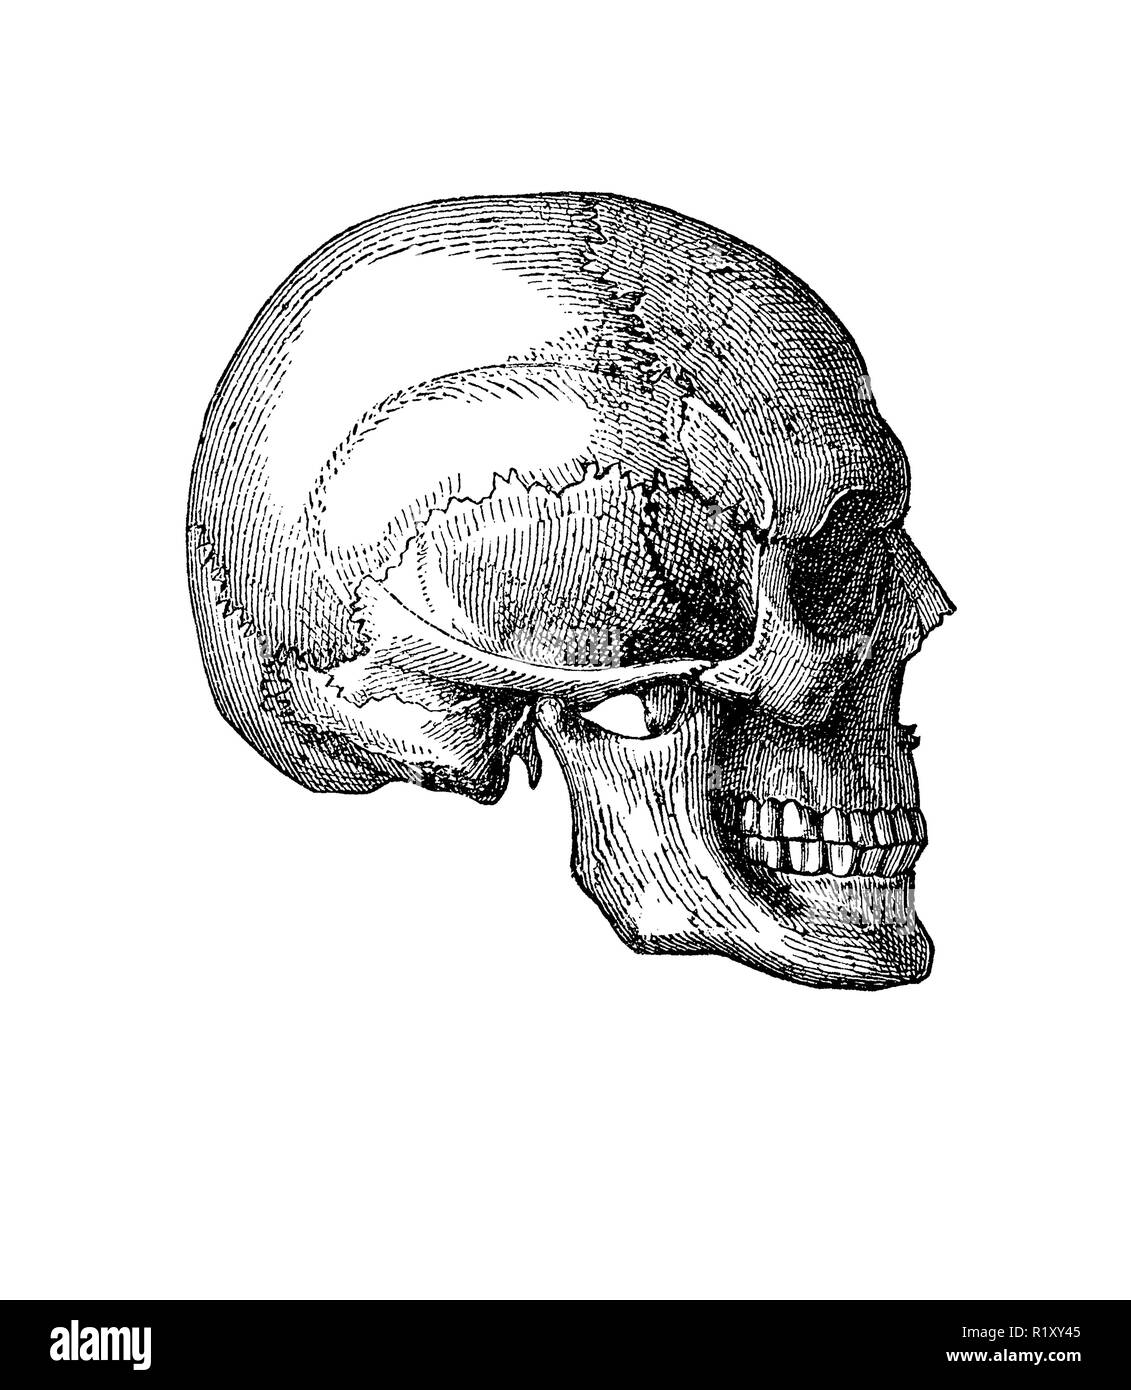 b707f77440357 Vintage illustration of anatomy, human skull lateral view - Stock Image